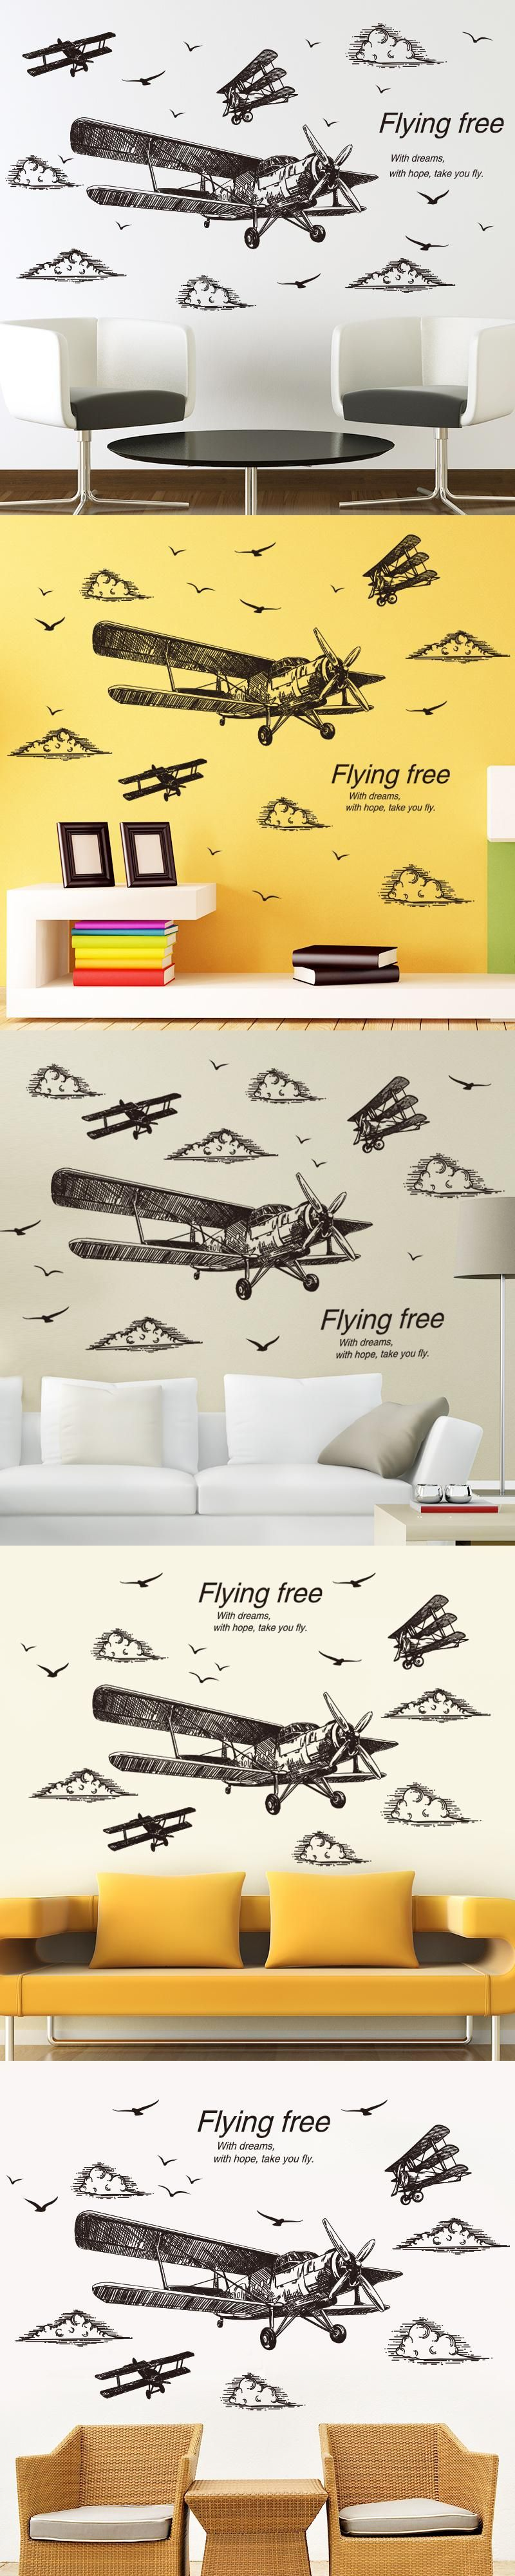 SHIJUEHEZI] Freehand Sketching Airplane 3D Wall Stickers Vinyl ...